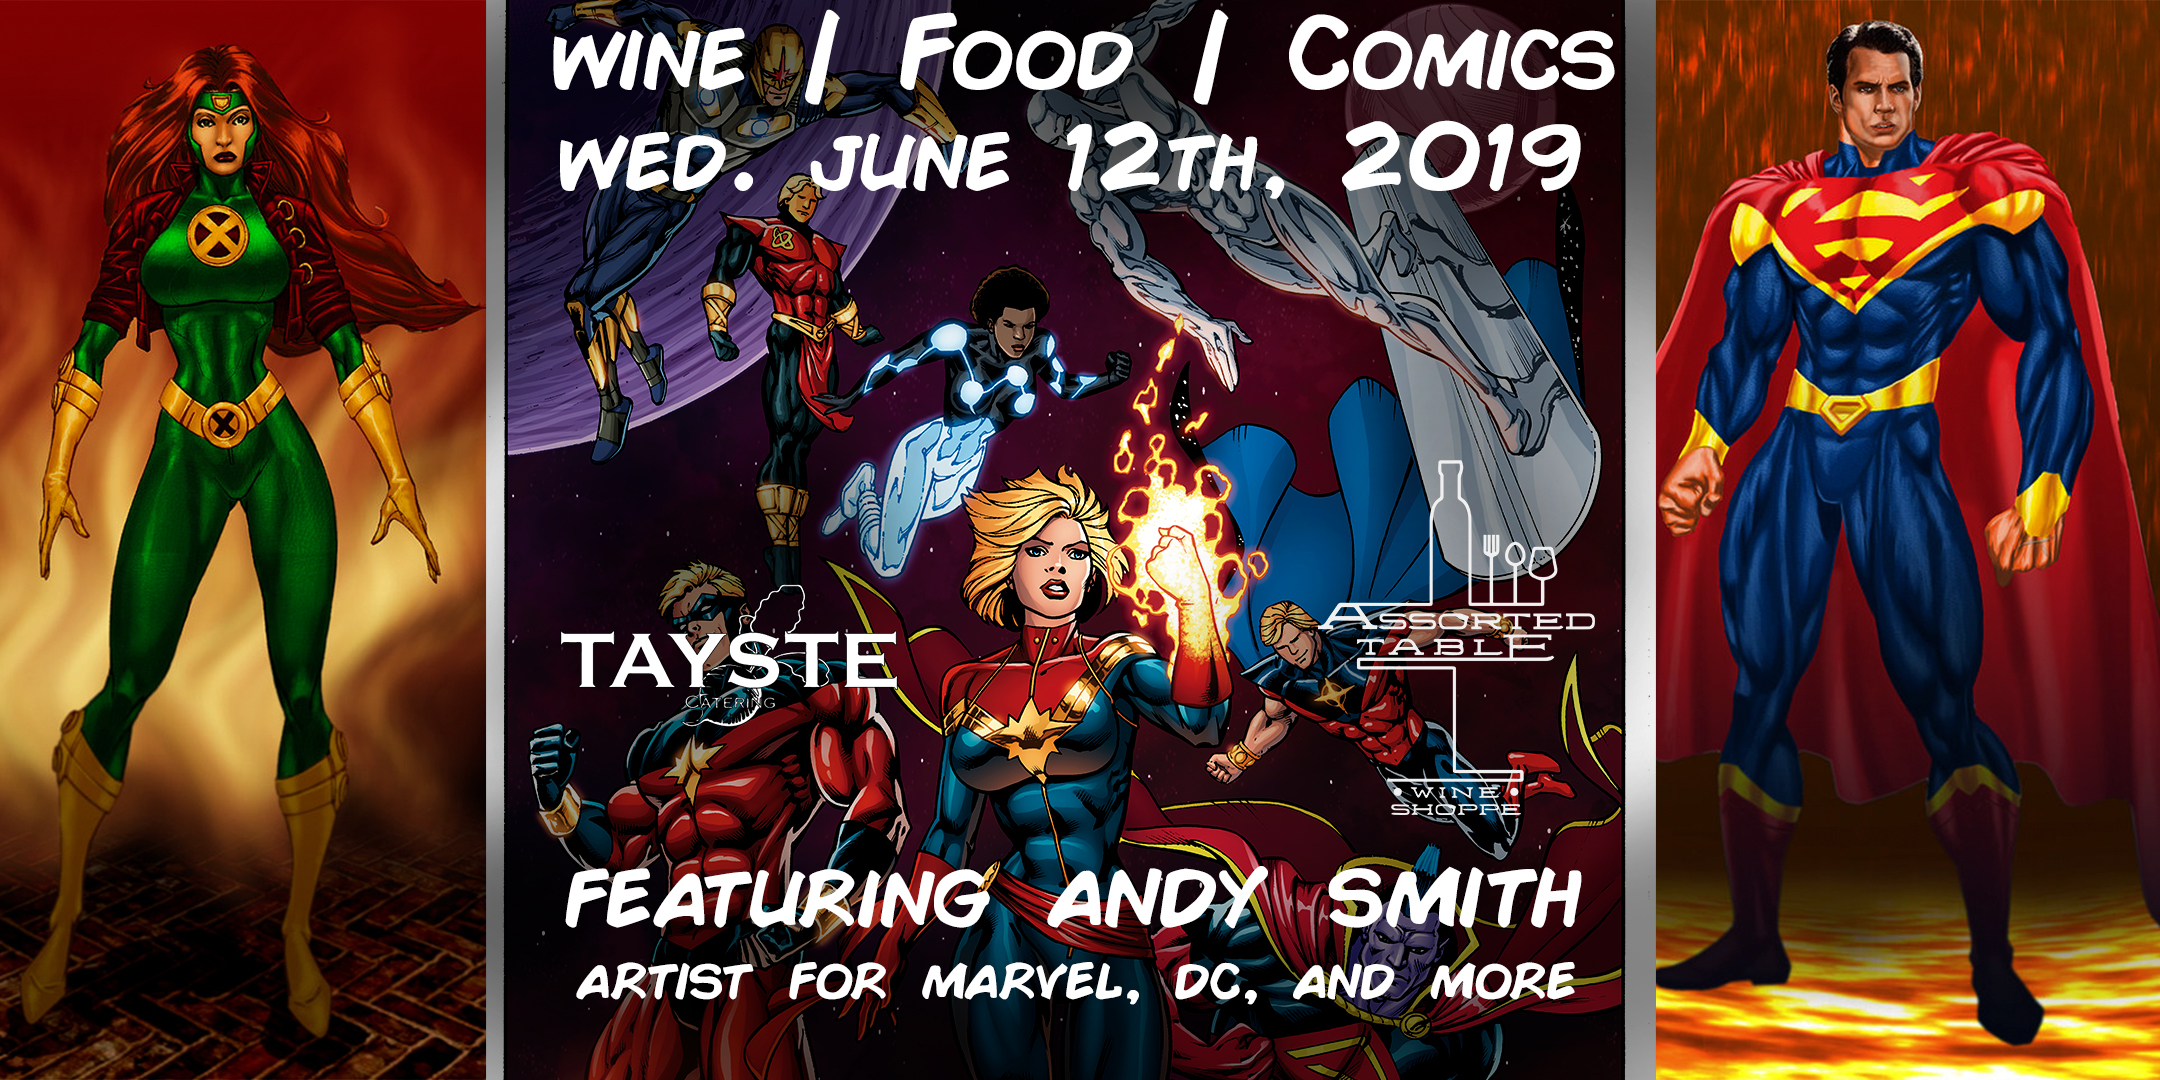 WINE | FOOD | COMICS